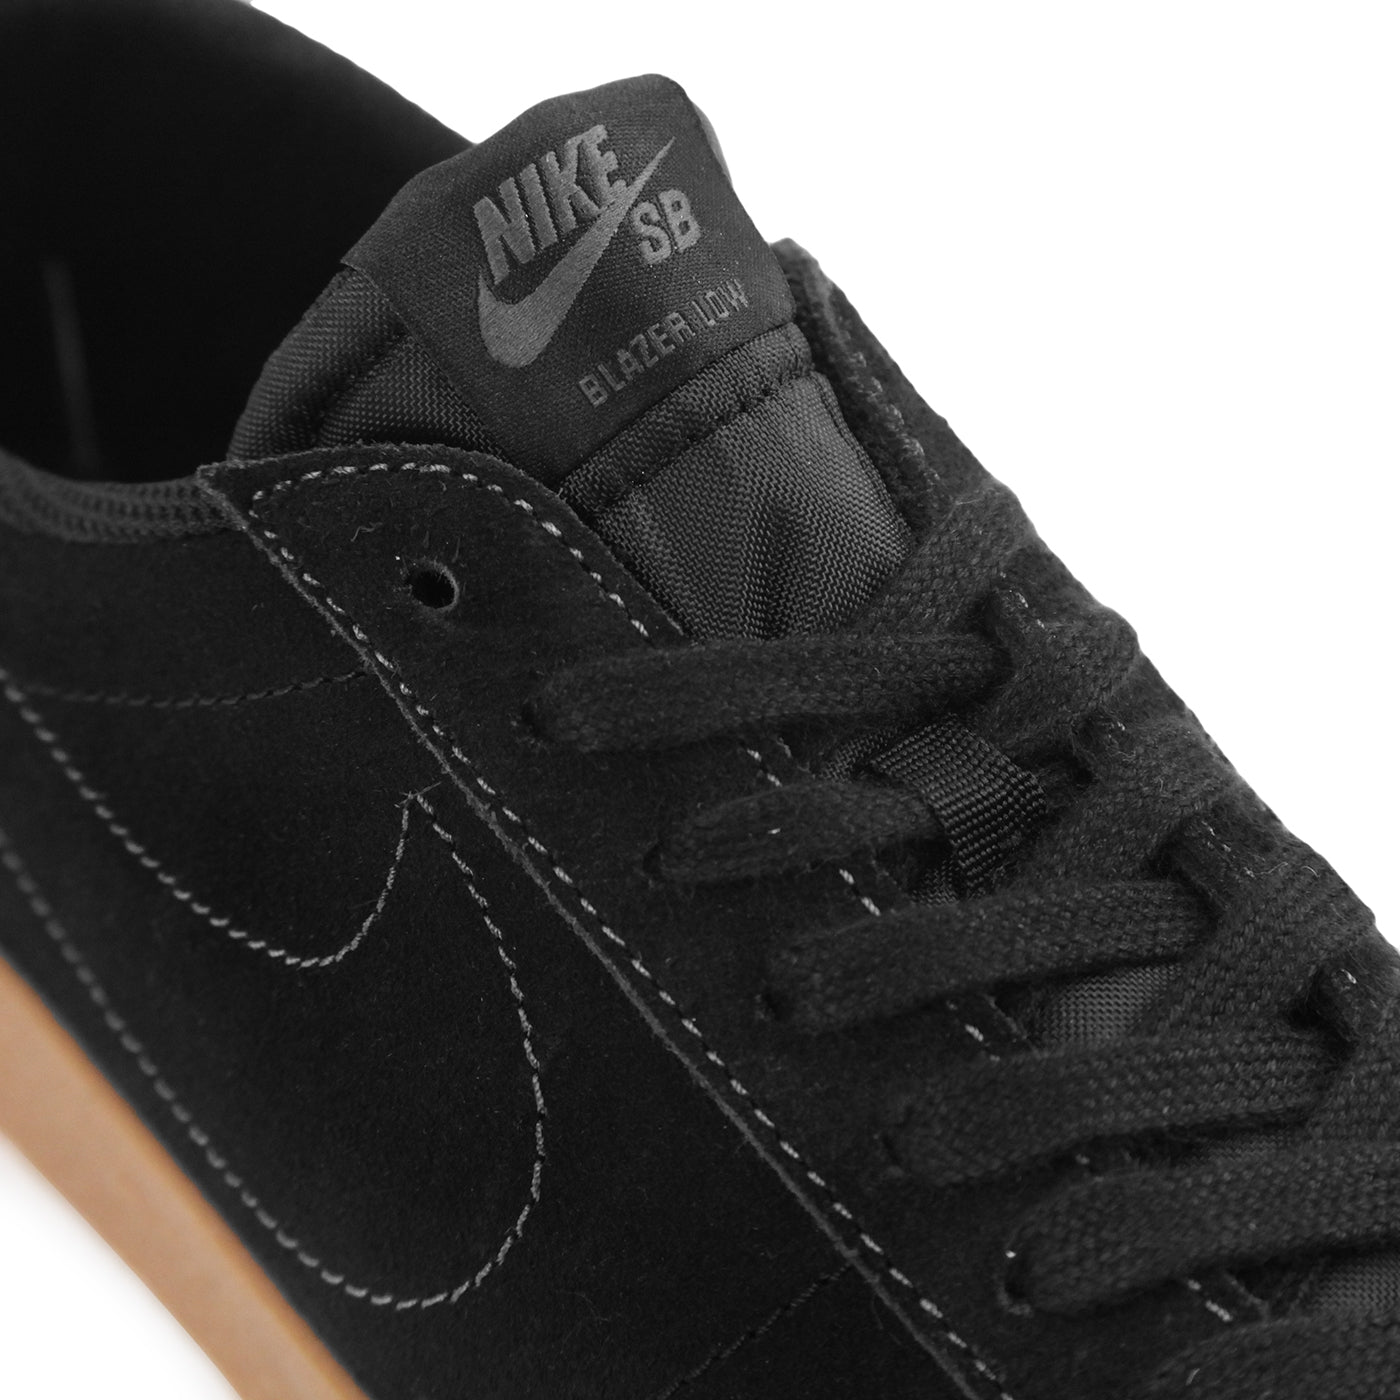 83a8fb4748f77 Nike SB Zoom Blazer Low Shoes - Black   Black   Anthracite. Size Charts